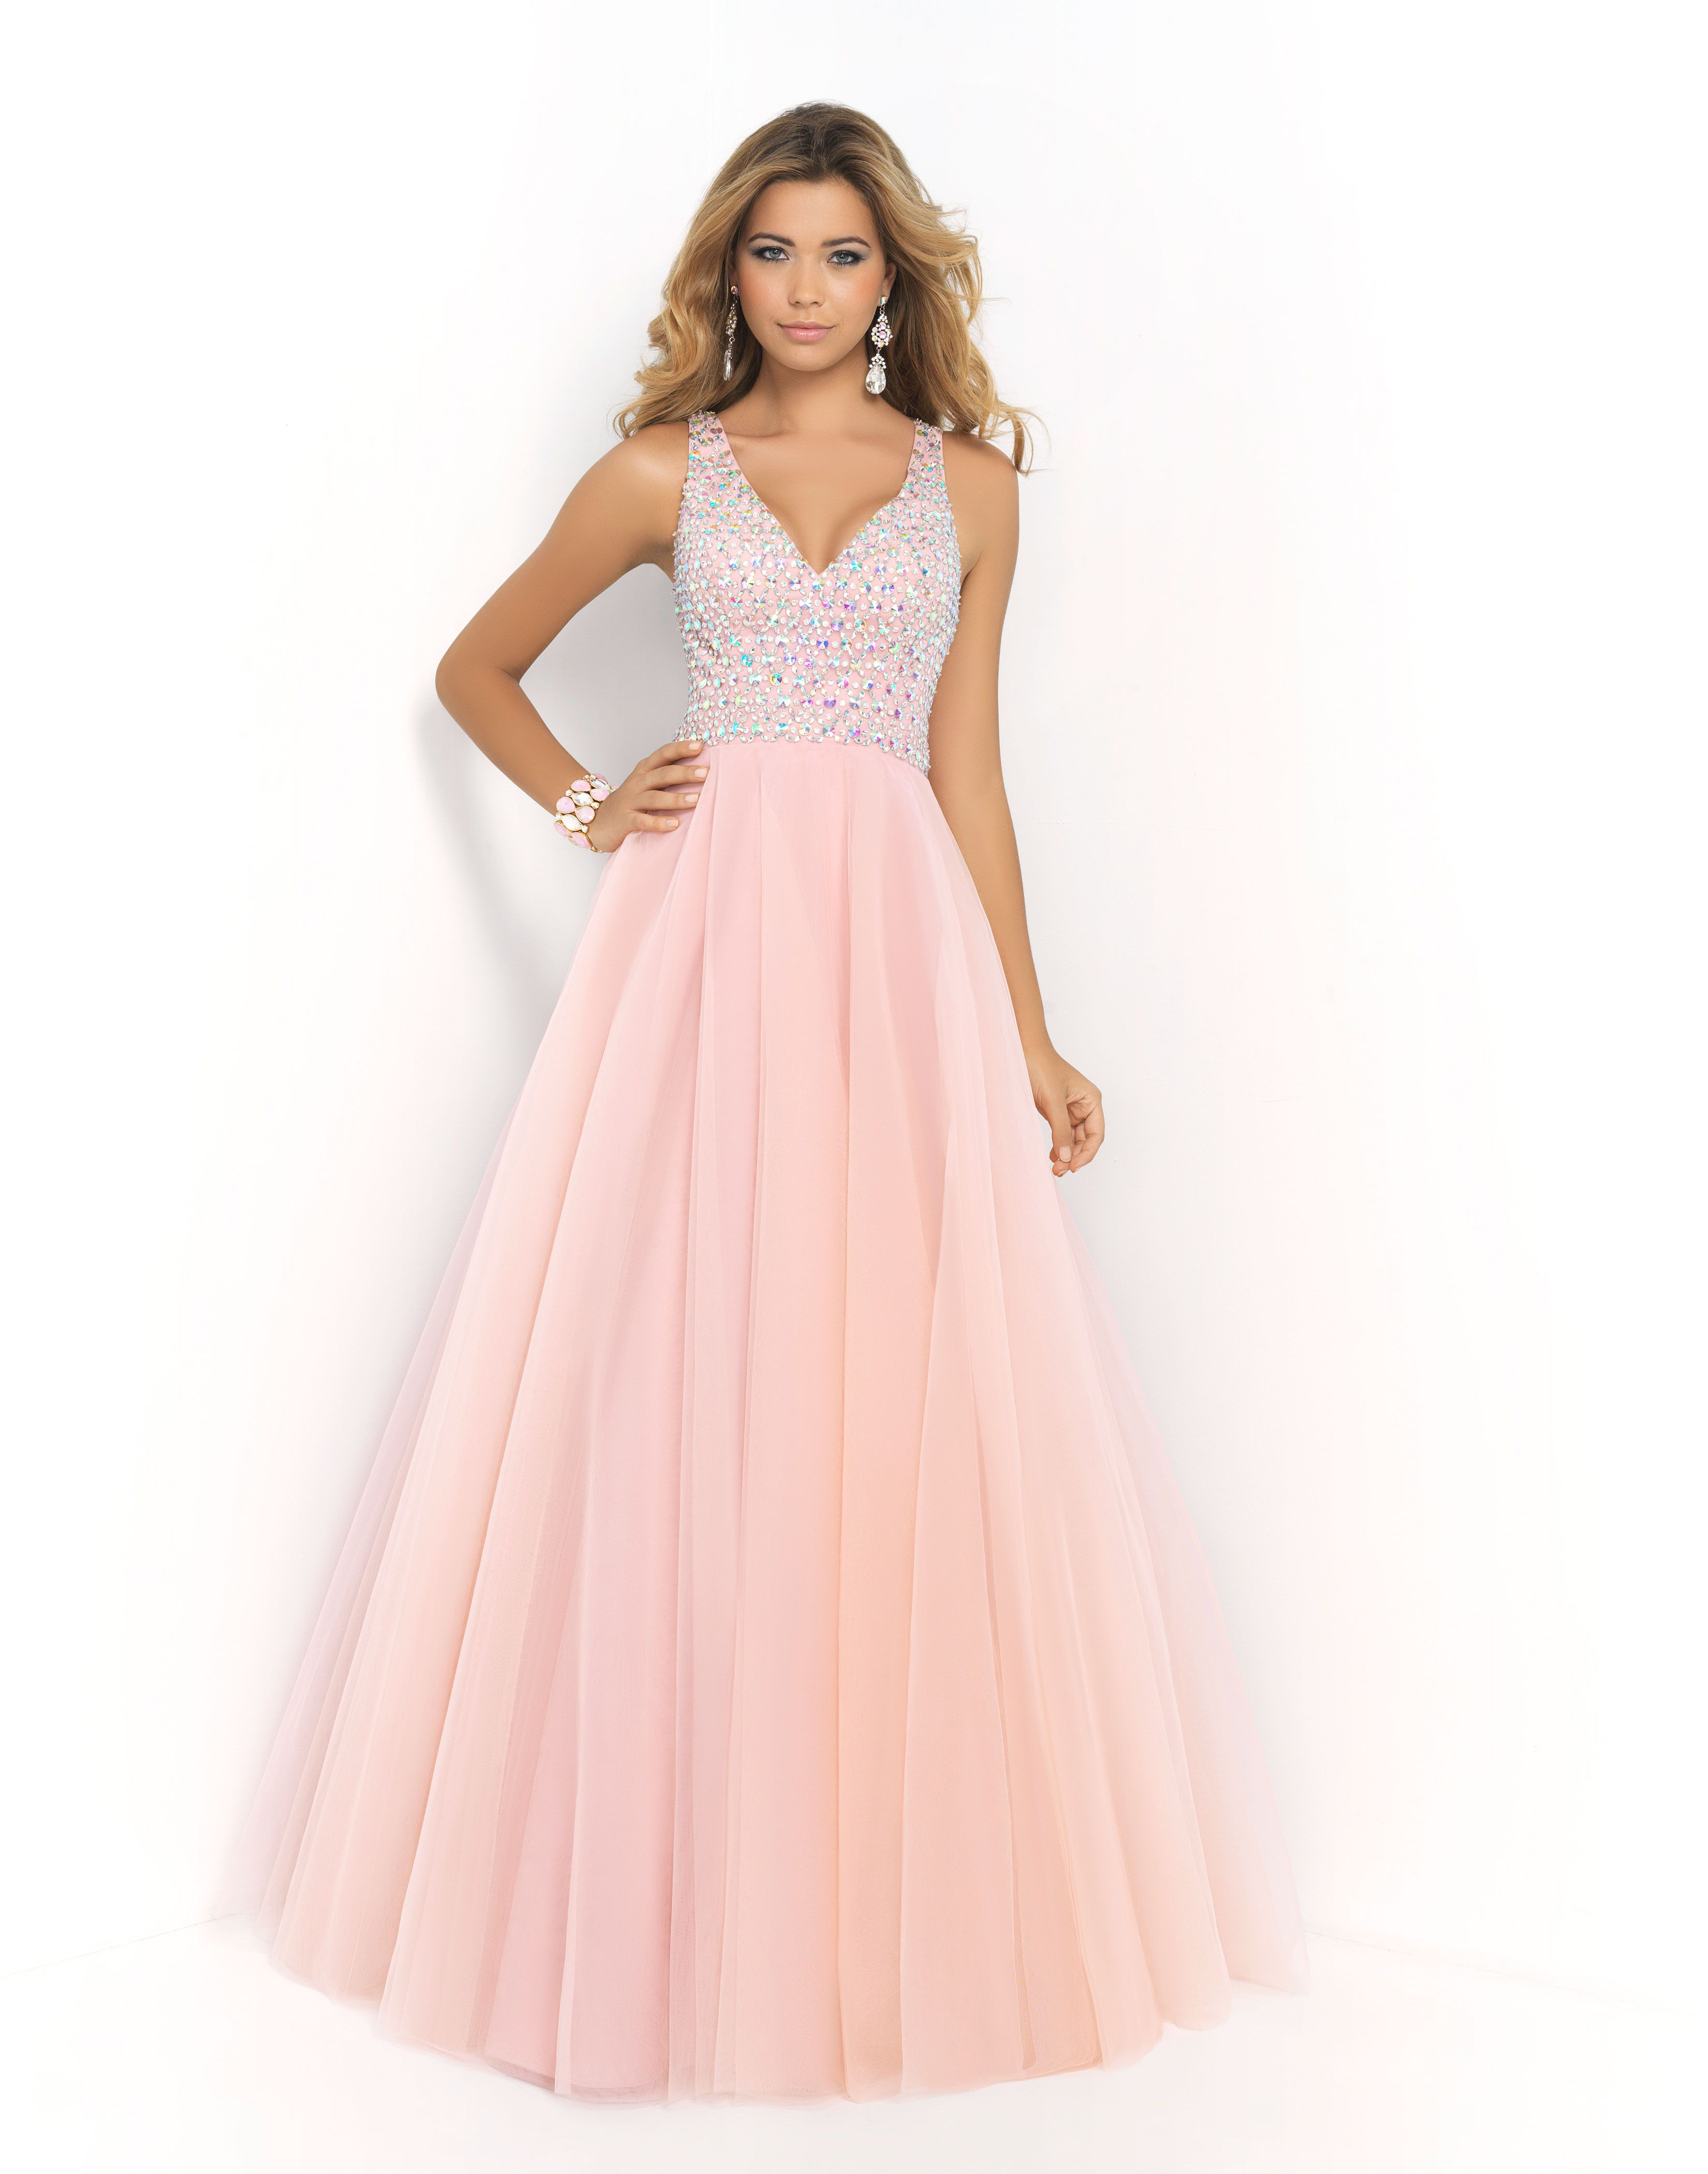 8 Ball Gowns That Will Make You Feel Like A Princess On Prom